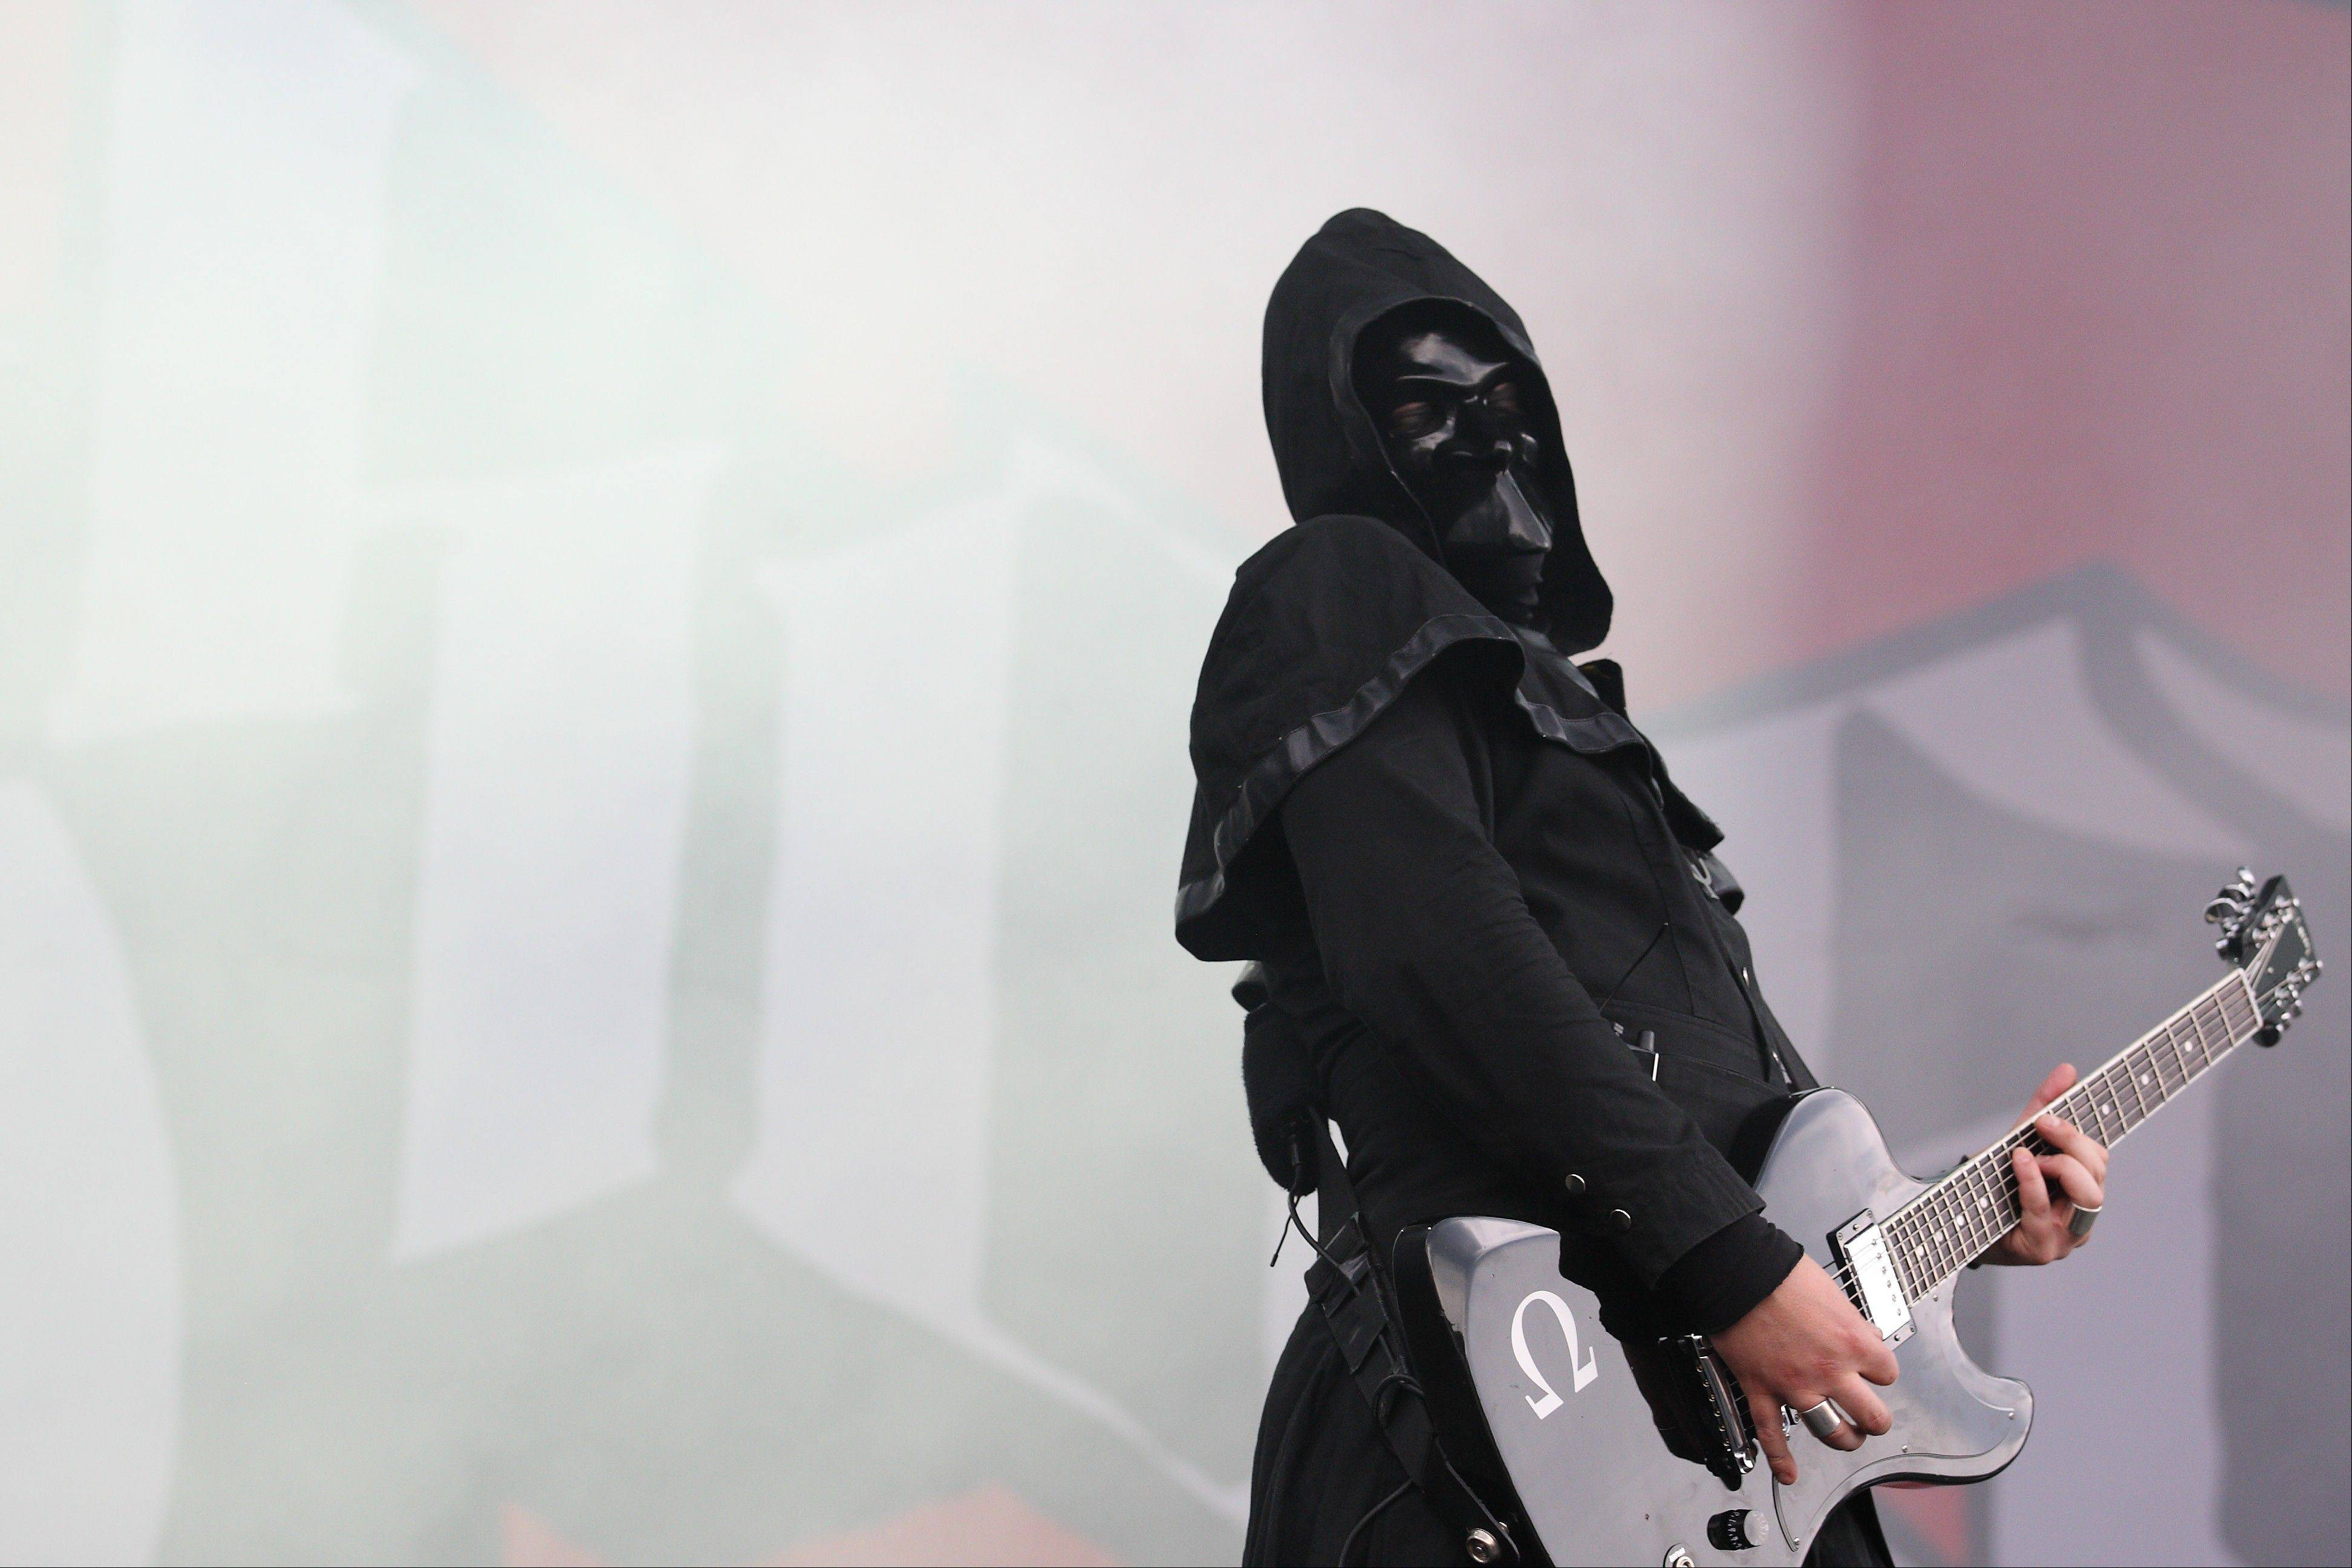 The Swedish band Ghost BC performs on day 1 of Lollapalooza 2013 at Grant Park in Chicago Friday.